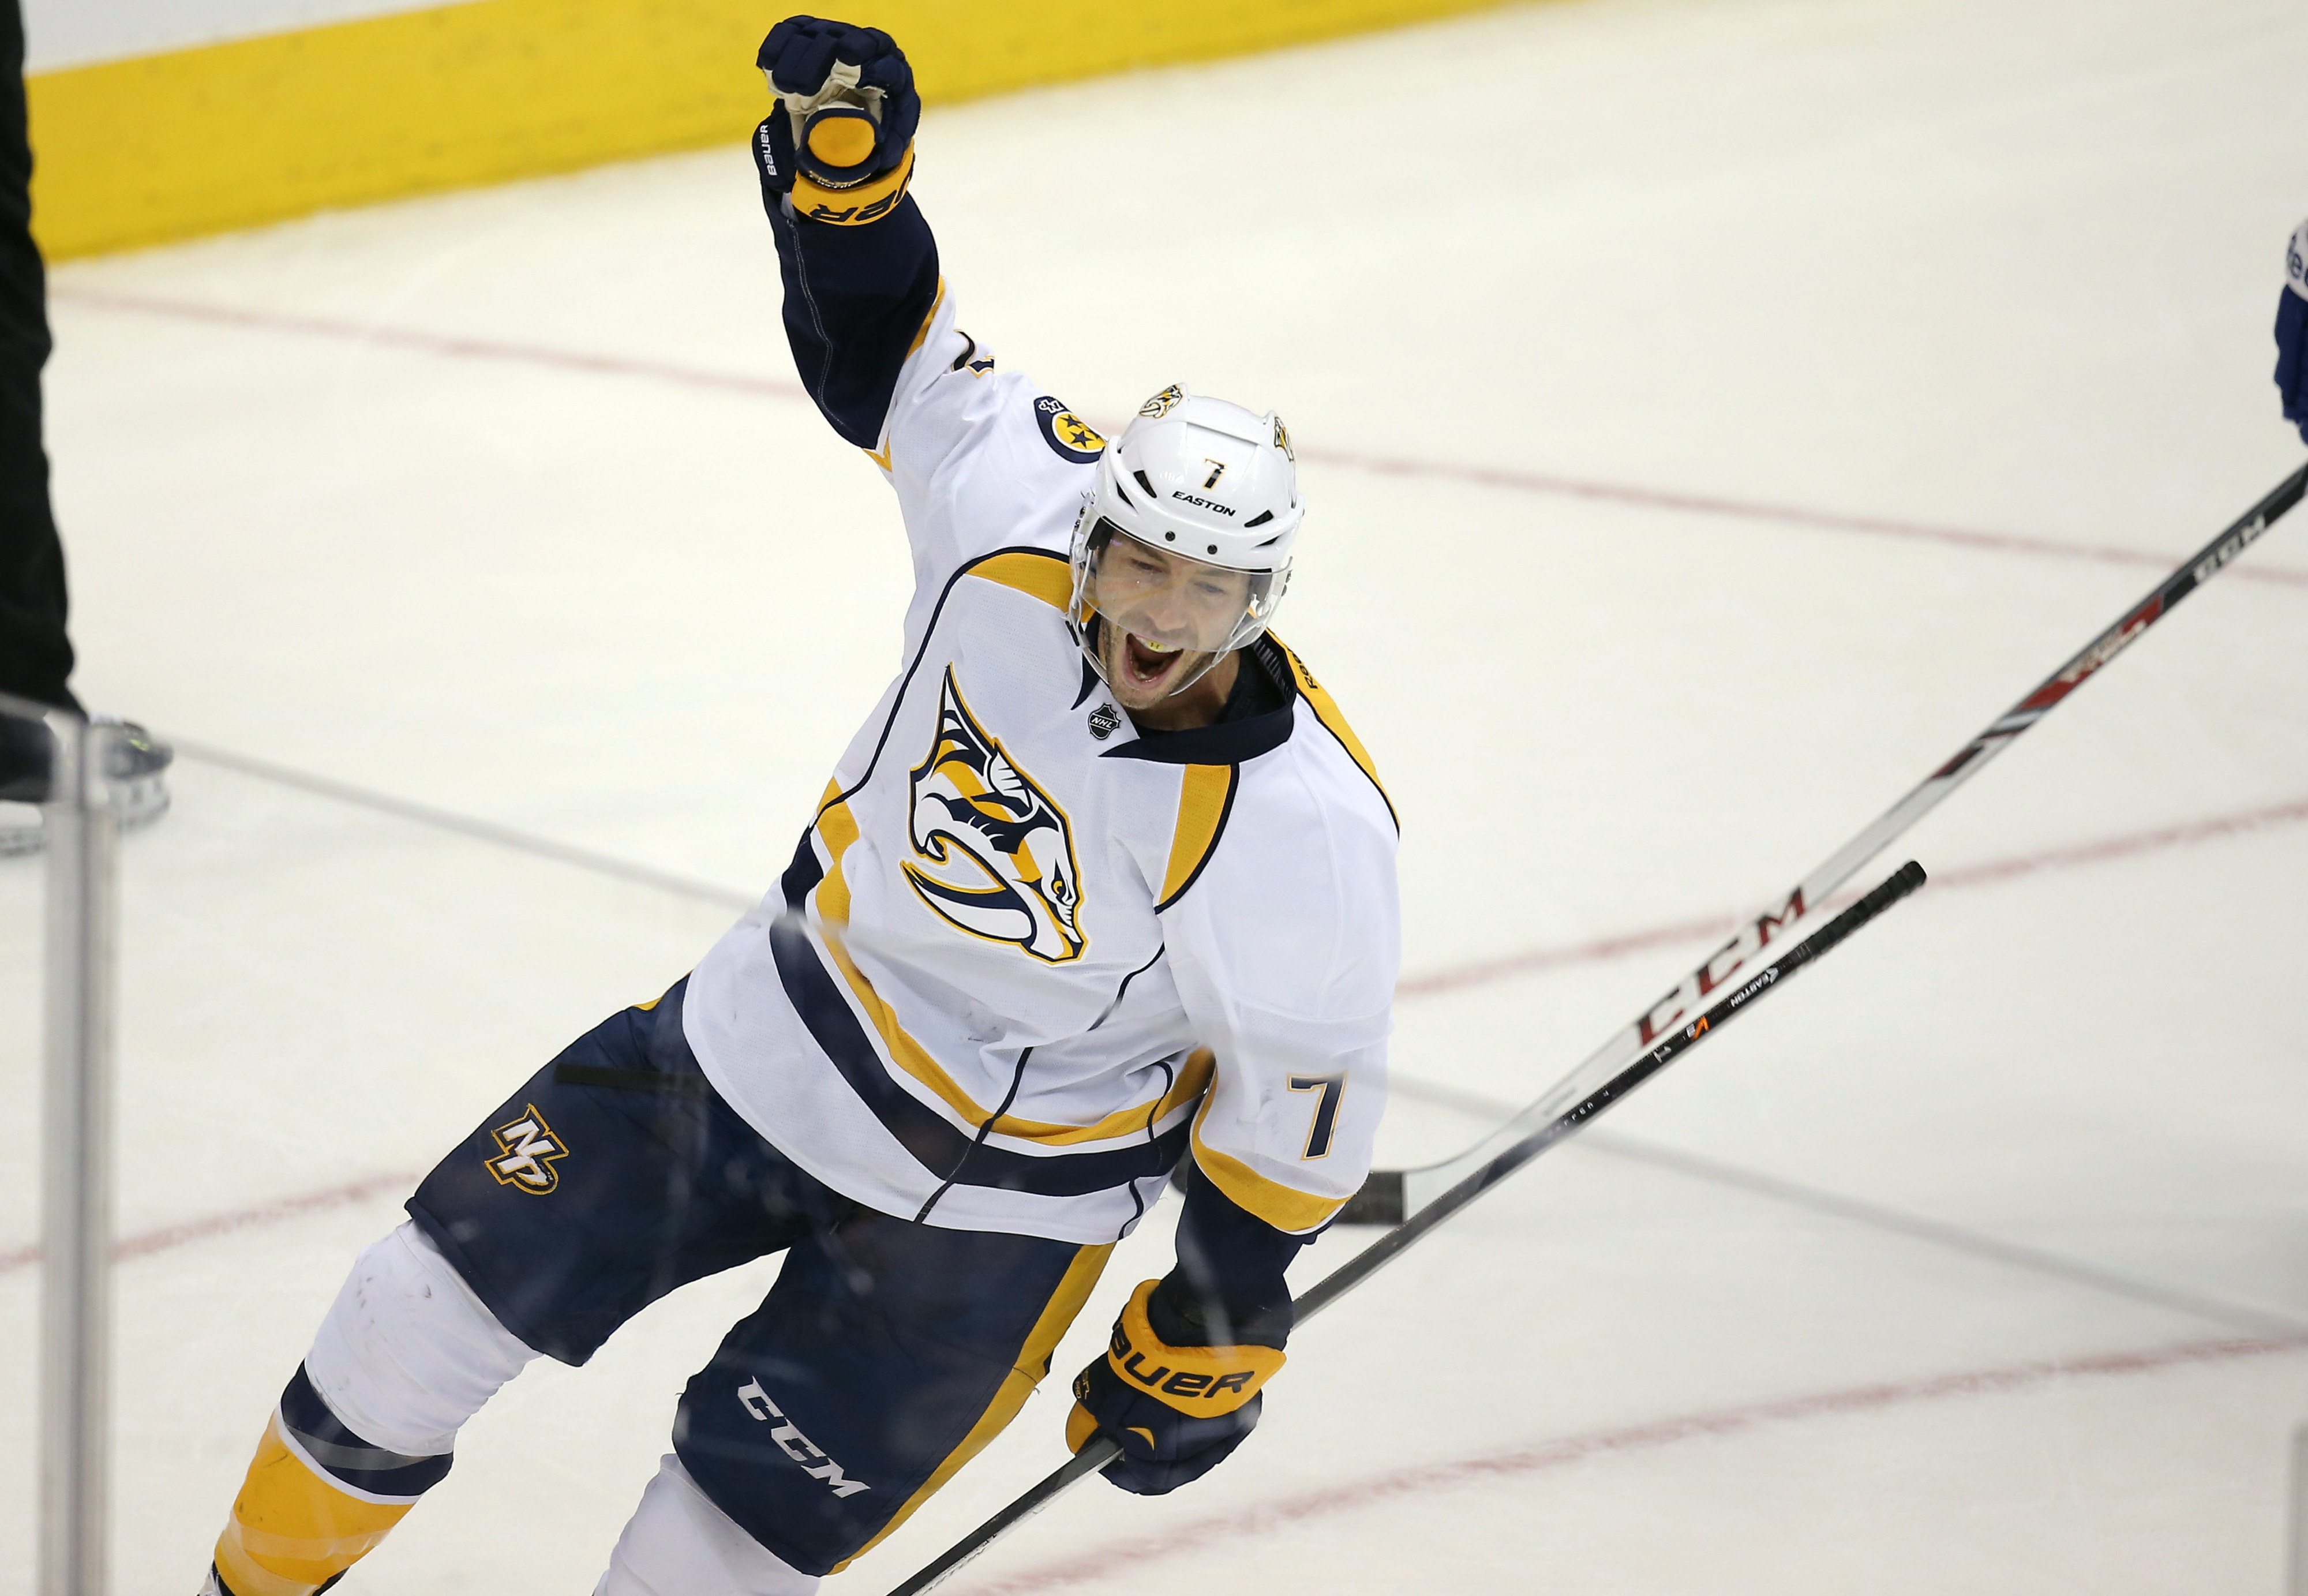 Preds center and 2013 free agent acquisition Matt Cullen celebrates his goal against the Toronto Maple Leafs at Air Canada Centre on November 21, 2013.